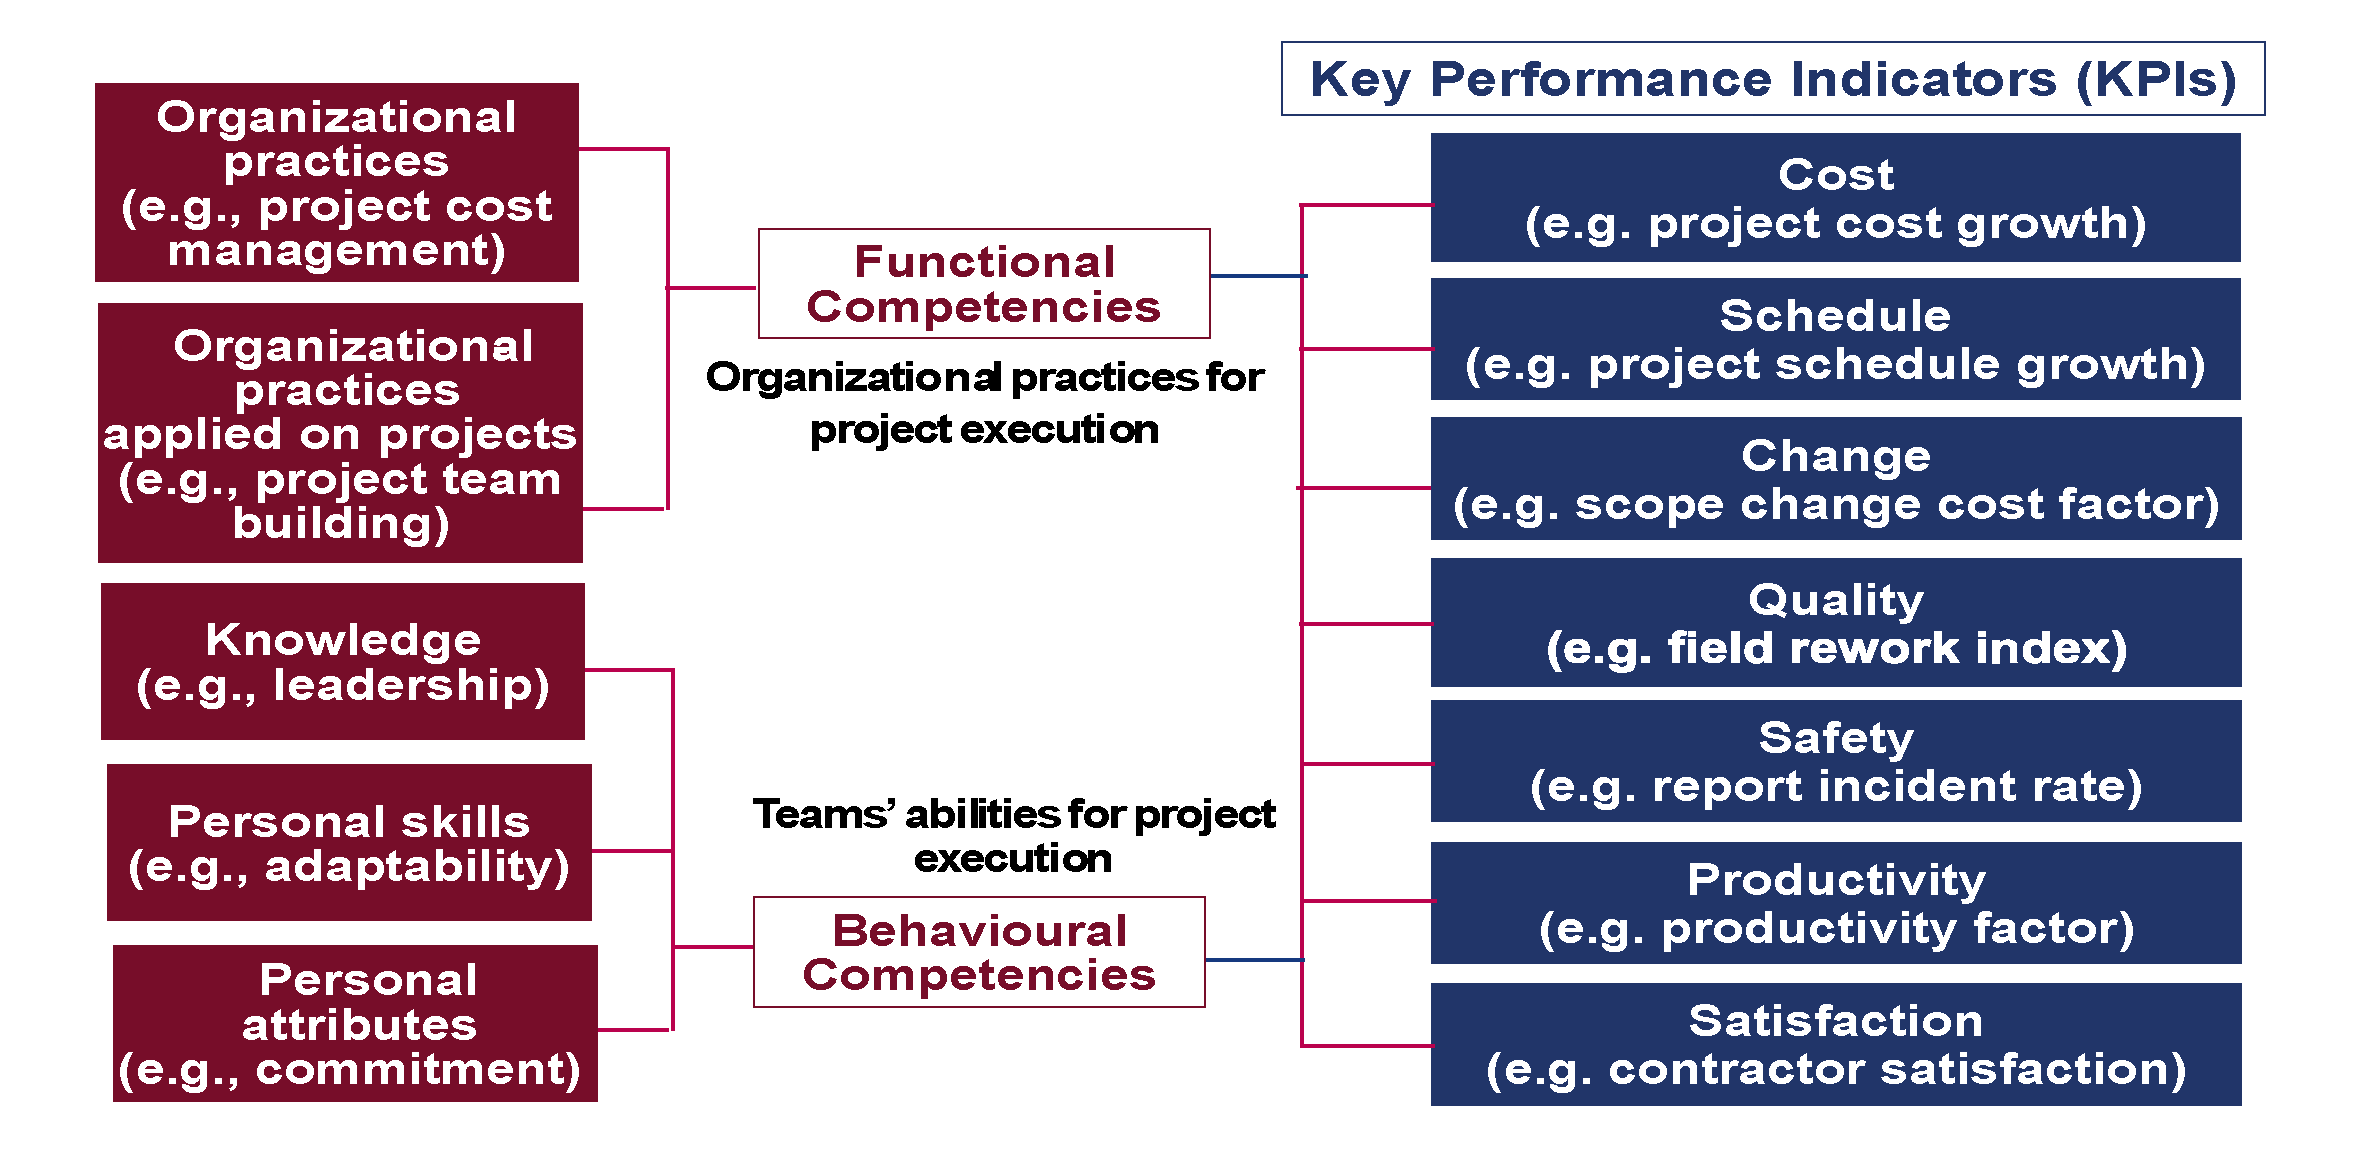 Construction organizational competencies and project performance